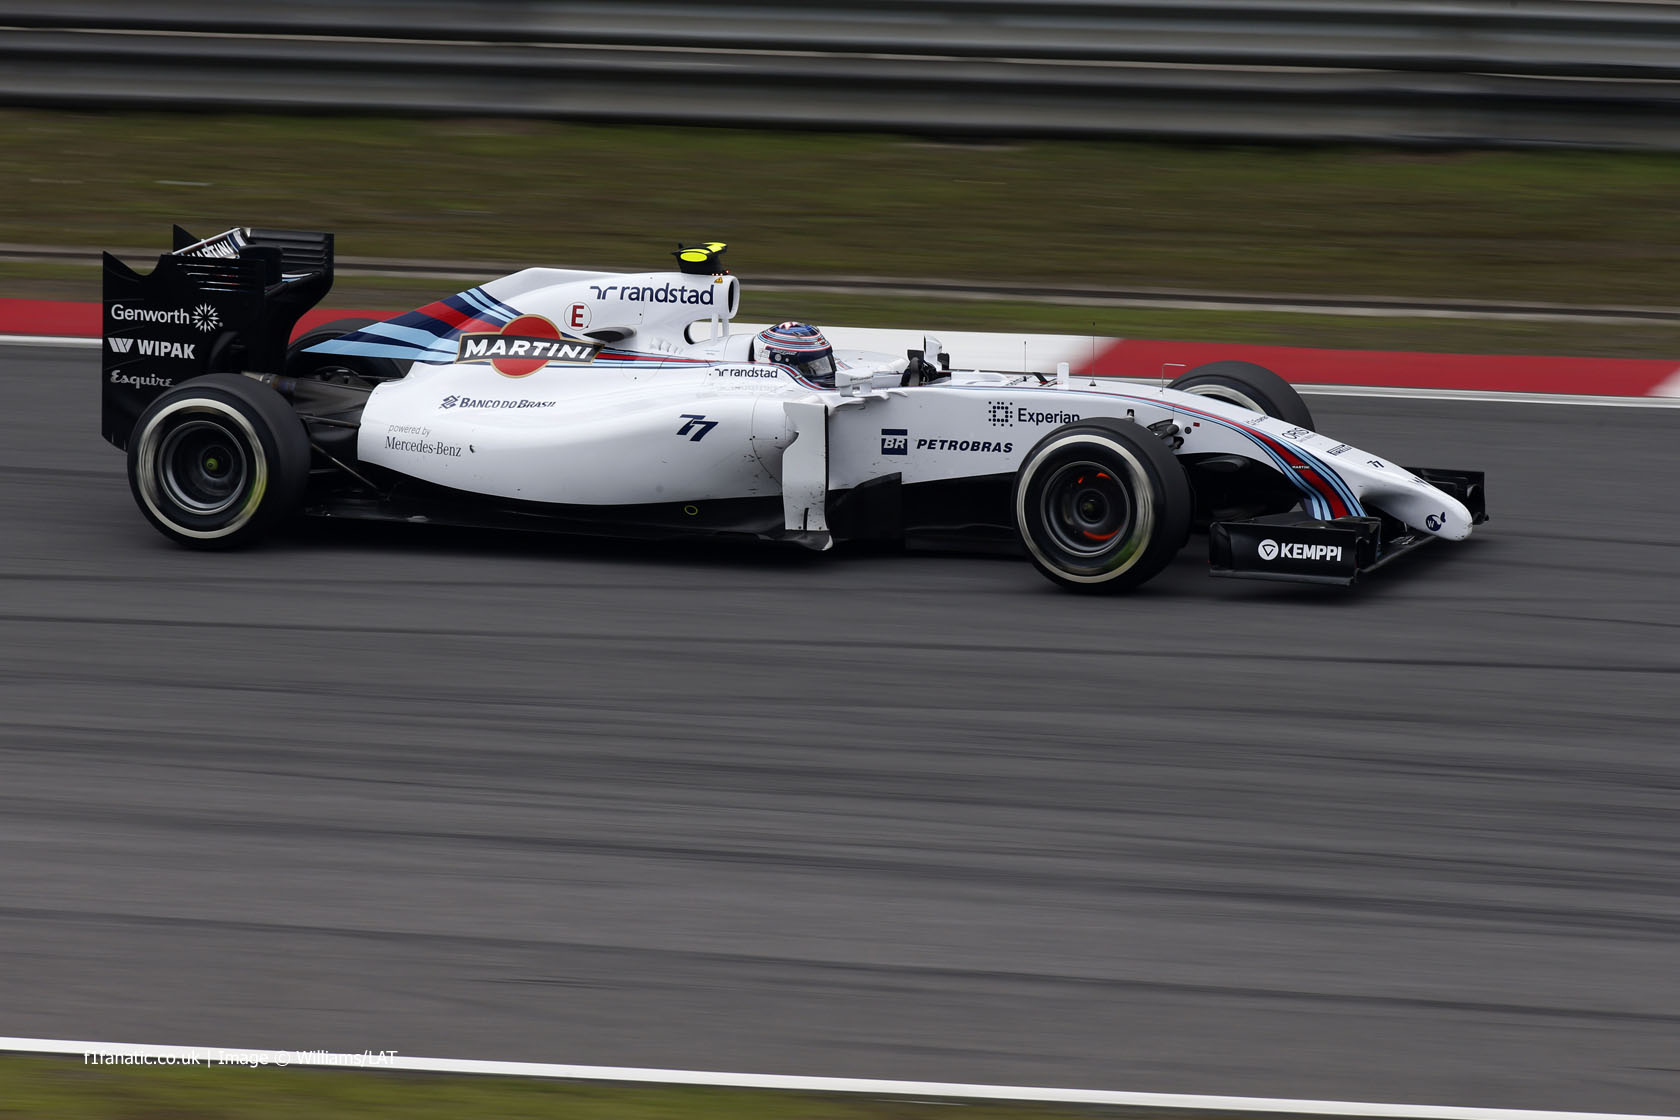 Valtteri Bottas, Williams, Shanghai International Circuit, 2014